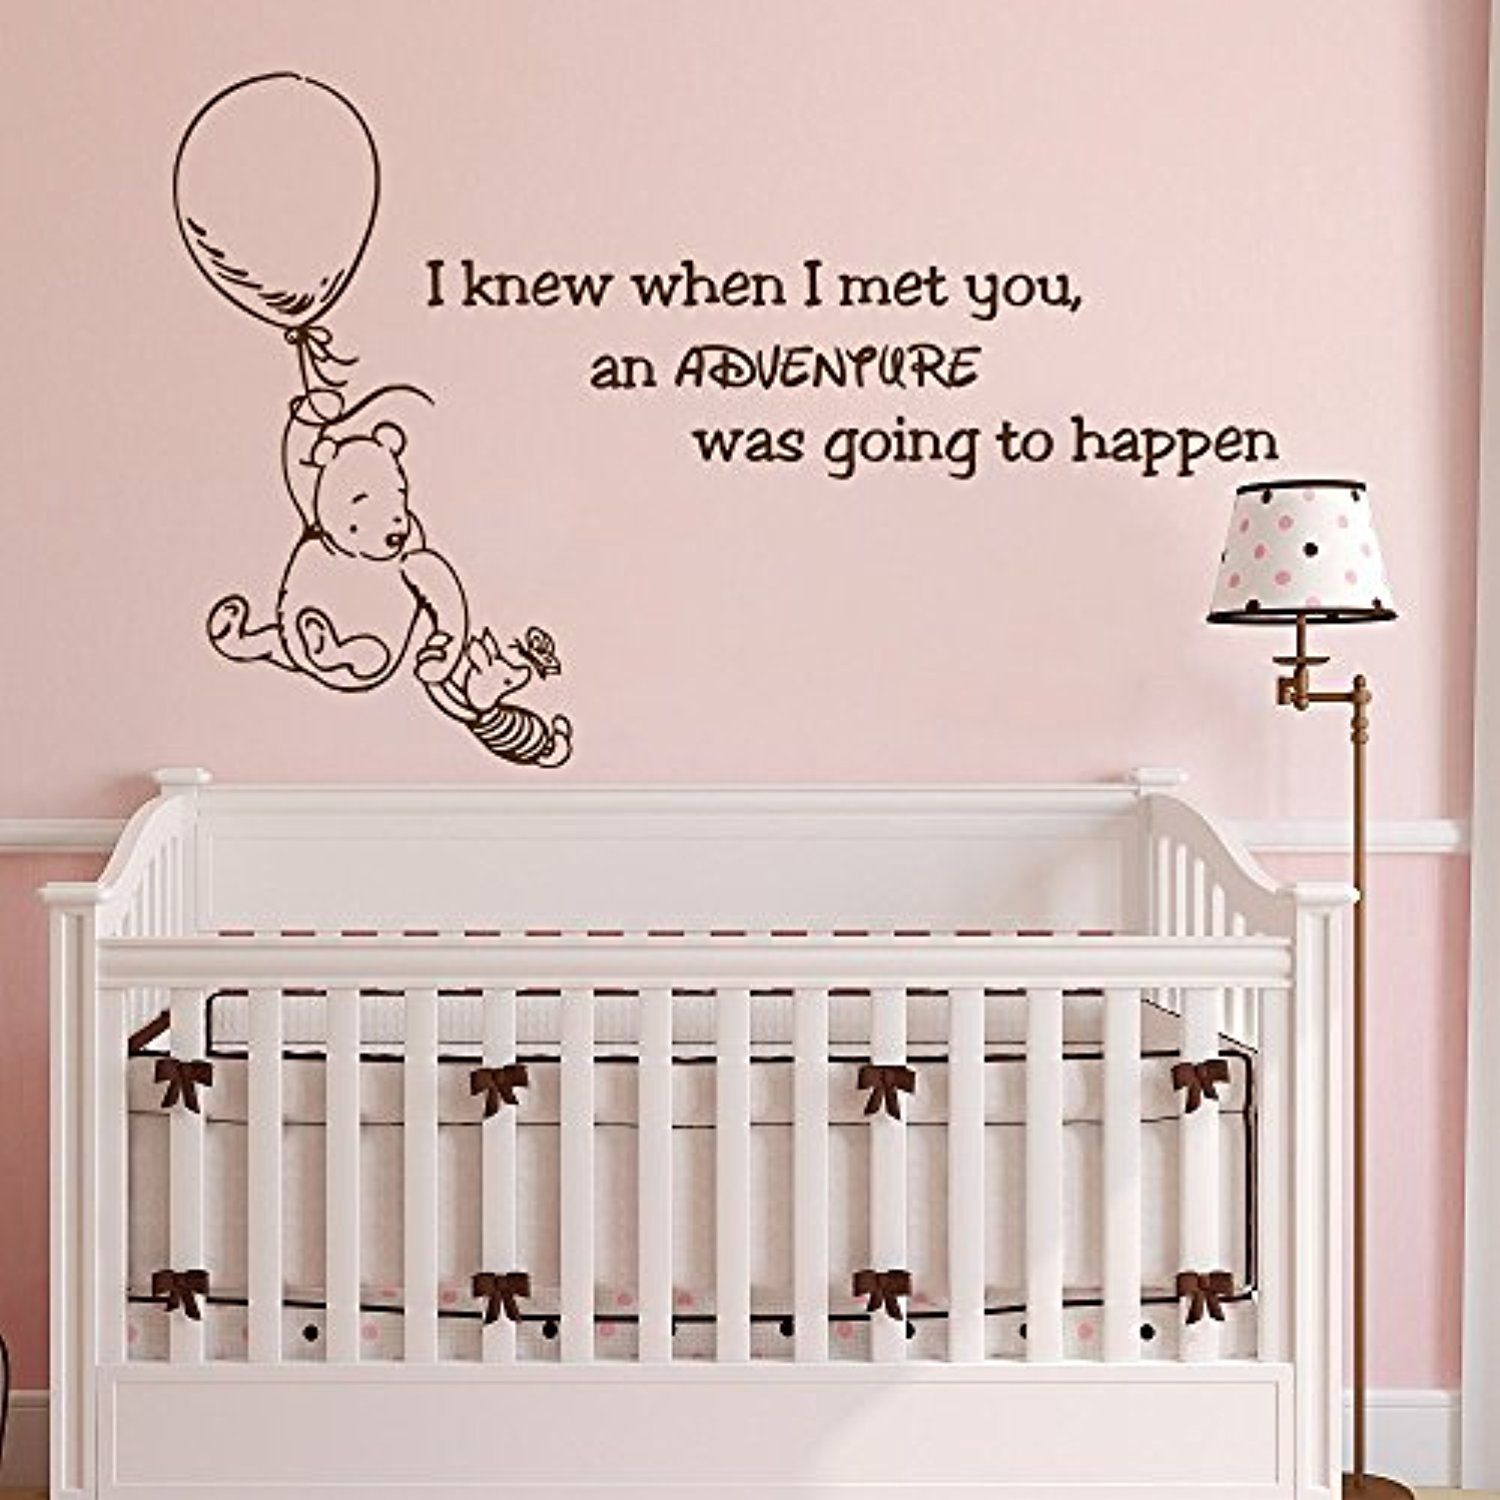 Winnie the pooh quote wall decal vinyl sticker decals quotes winnie the pooh quote wall decal vinyl sticker decals quotes adventure wall decal quote wall decor nursery baby room art kids playroom x212 for more amipublicfo Images